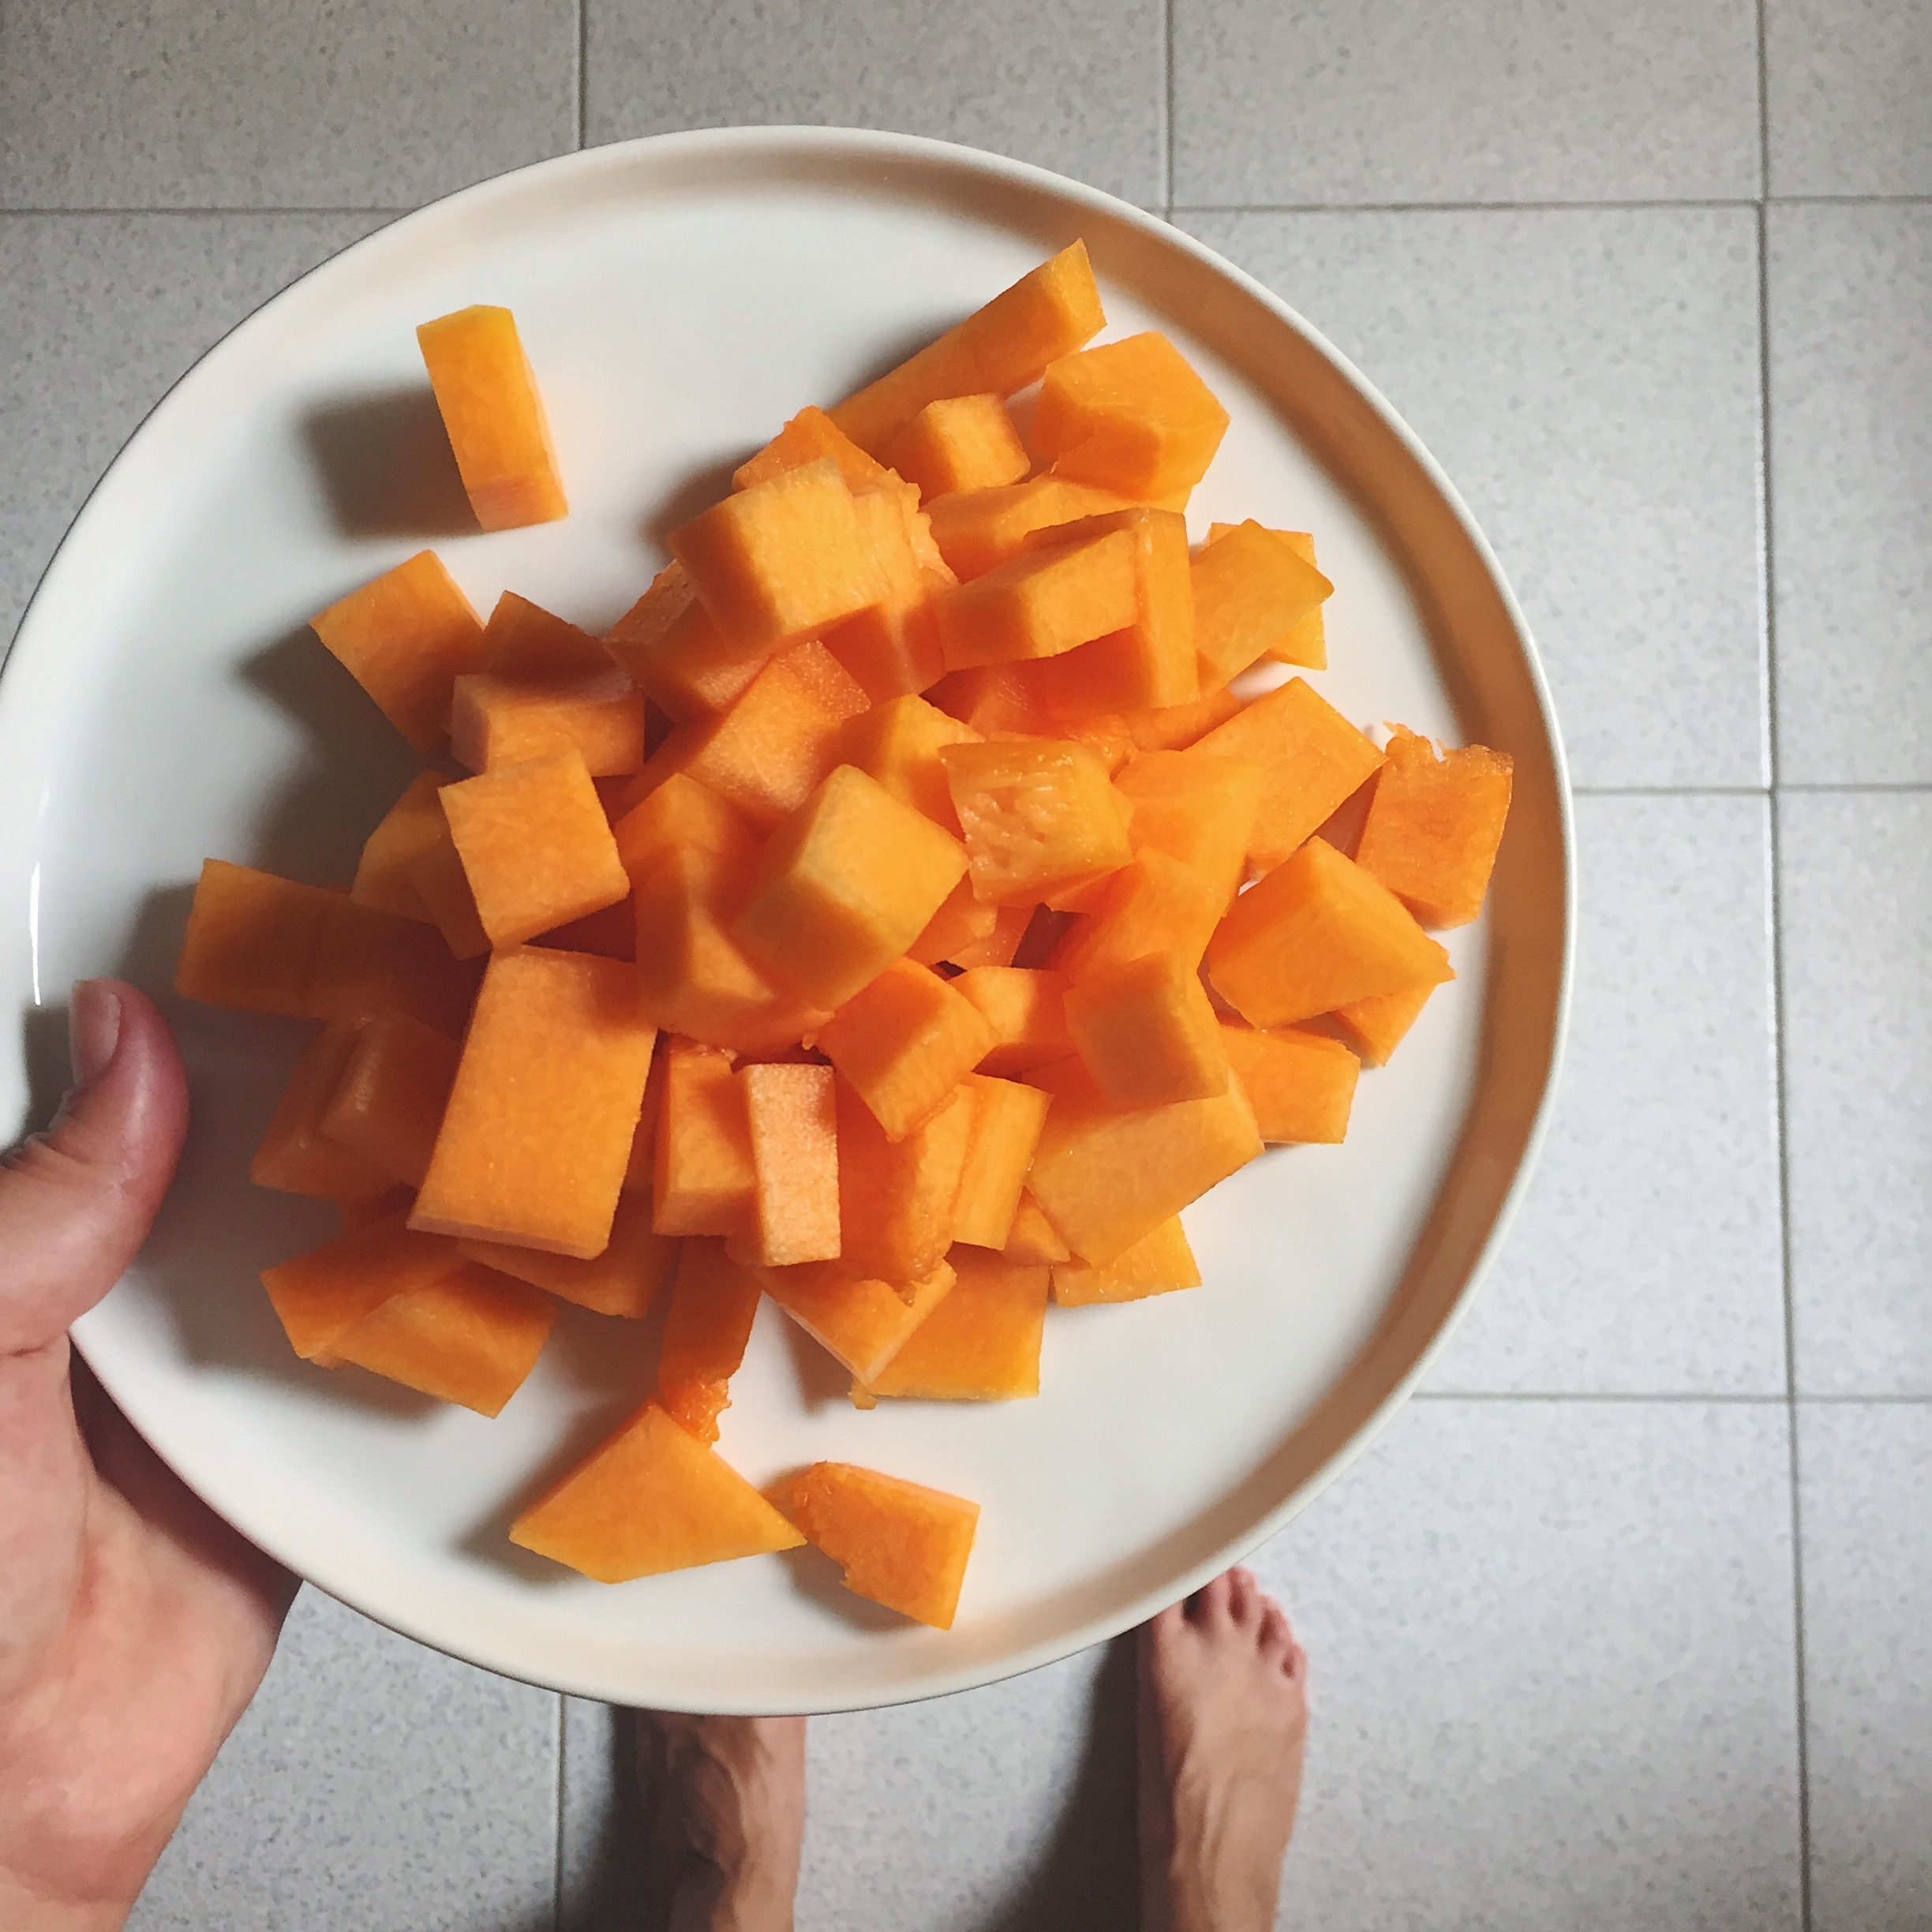 4. Prep zucca - Remove the skin, rinse and chop the zucca into roughly 1/2 inch cubes. Add to sauté pan and cook with onions for roughly 15 minutes, covered, stirring occasionally. Season with a pinch or two of salt.